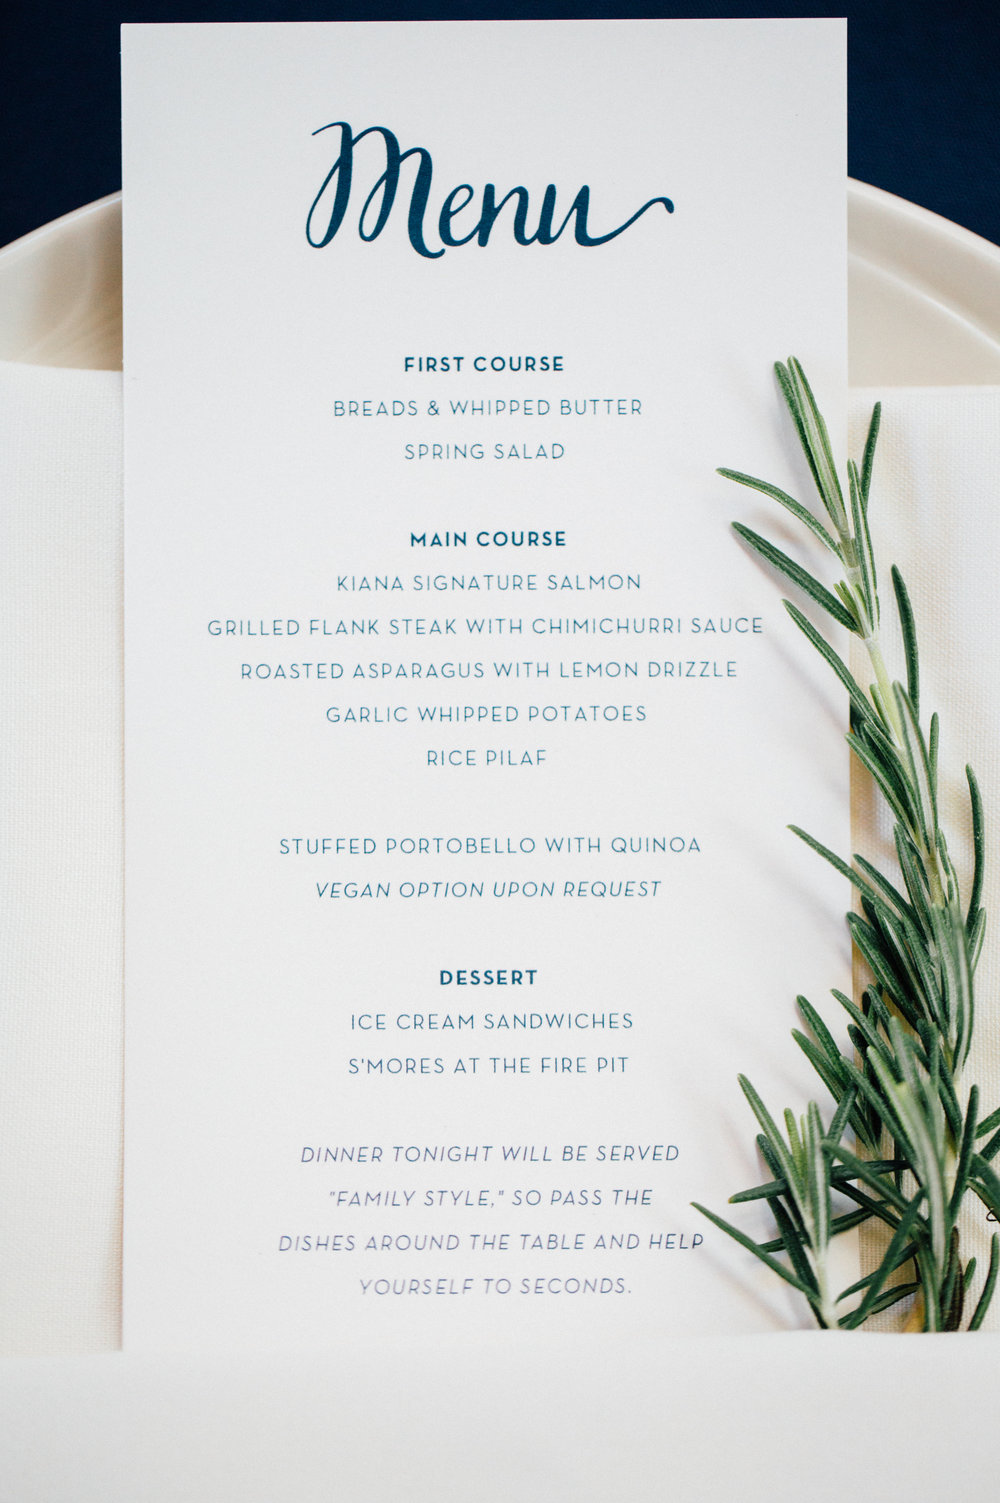 Menus with Rosemary Sprig